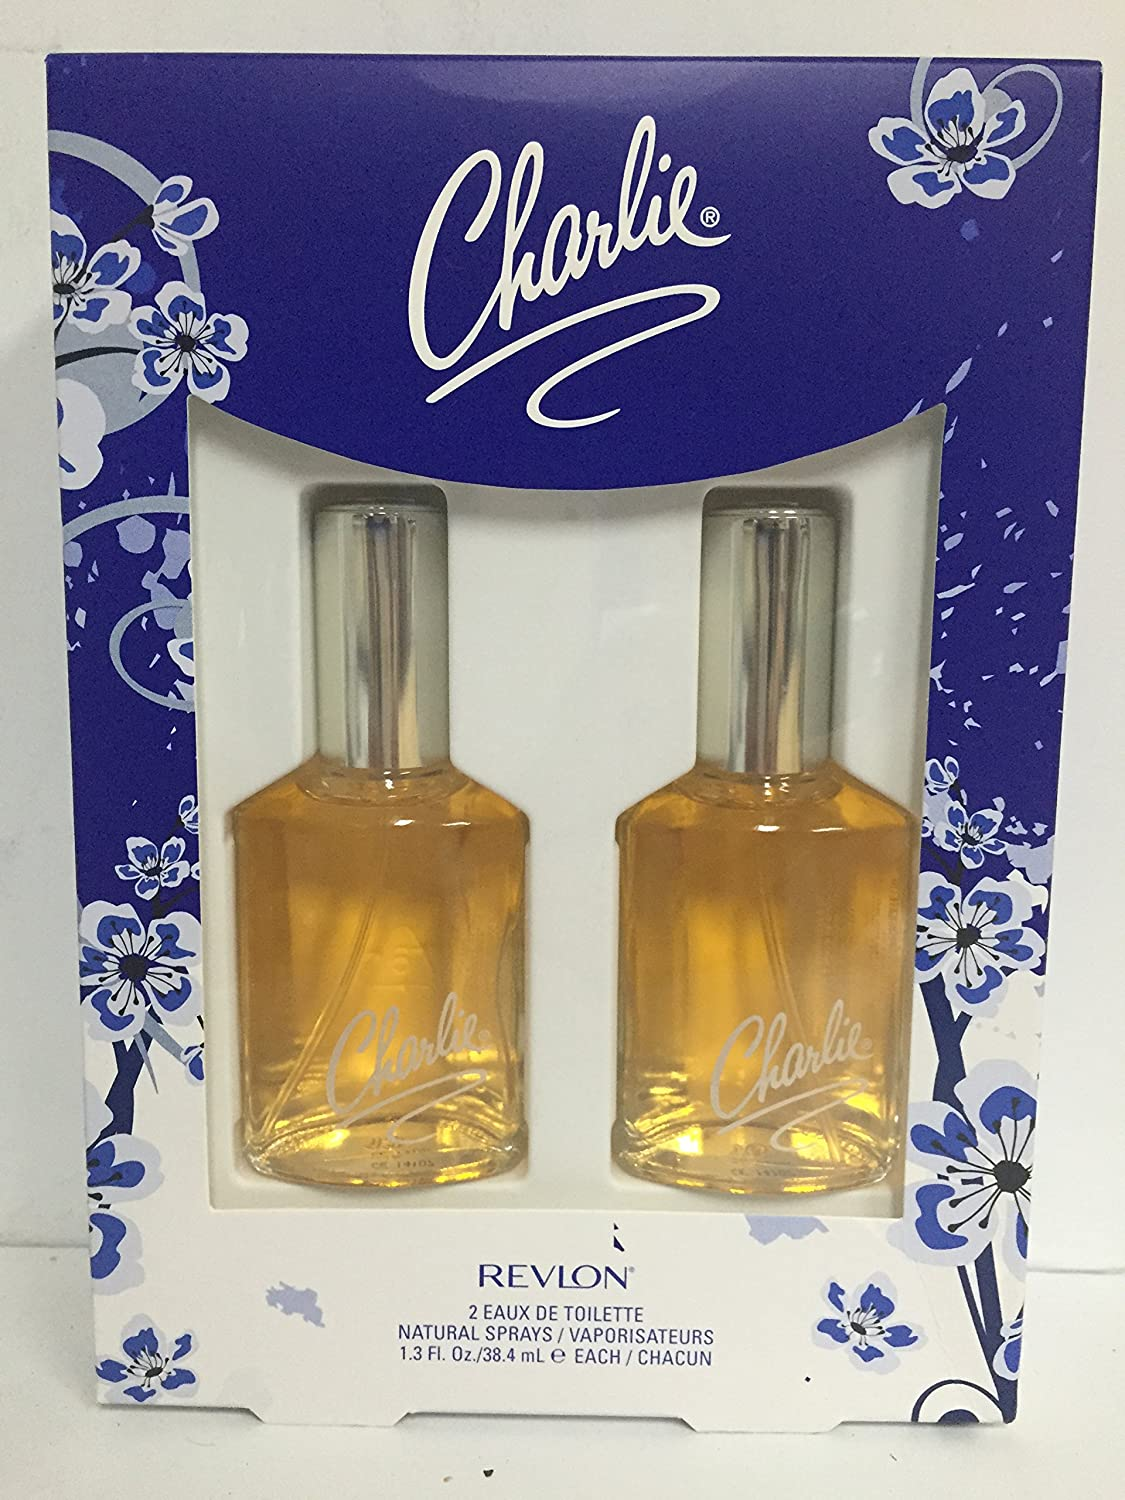 B0006VVNTA Revlon Charlie Original Perfume Fragrance By Revlon - Spray Bottle Set (2 x 1.3 Ounce) 91xmfEsZyRL._SL1500_